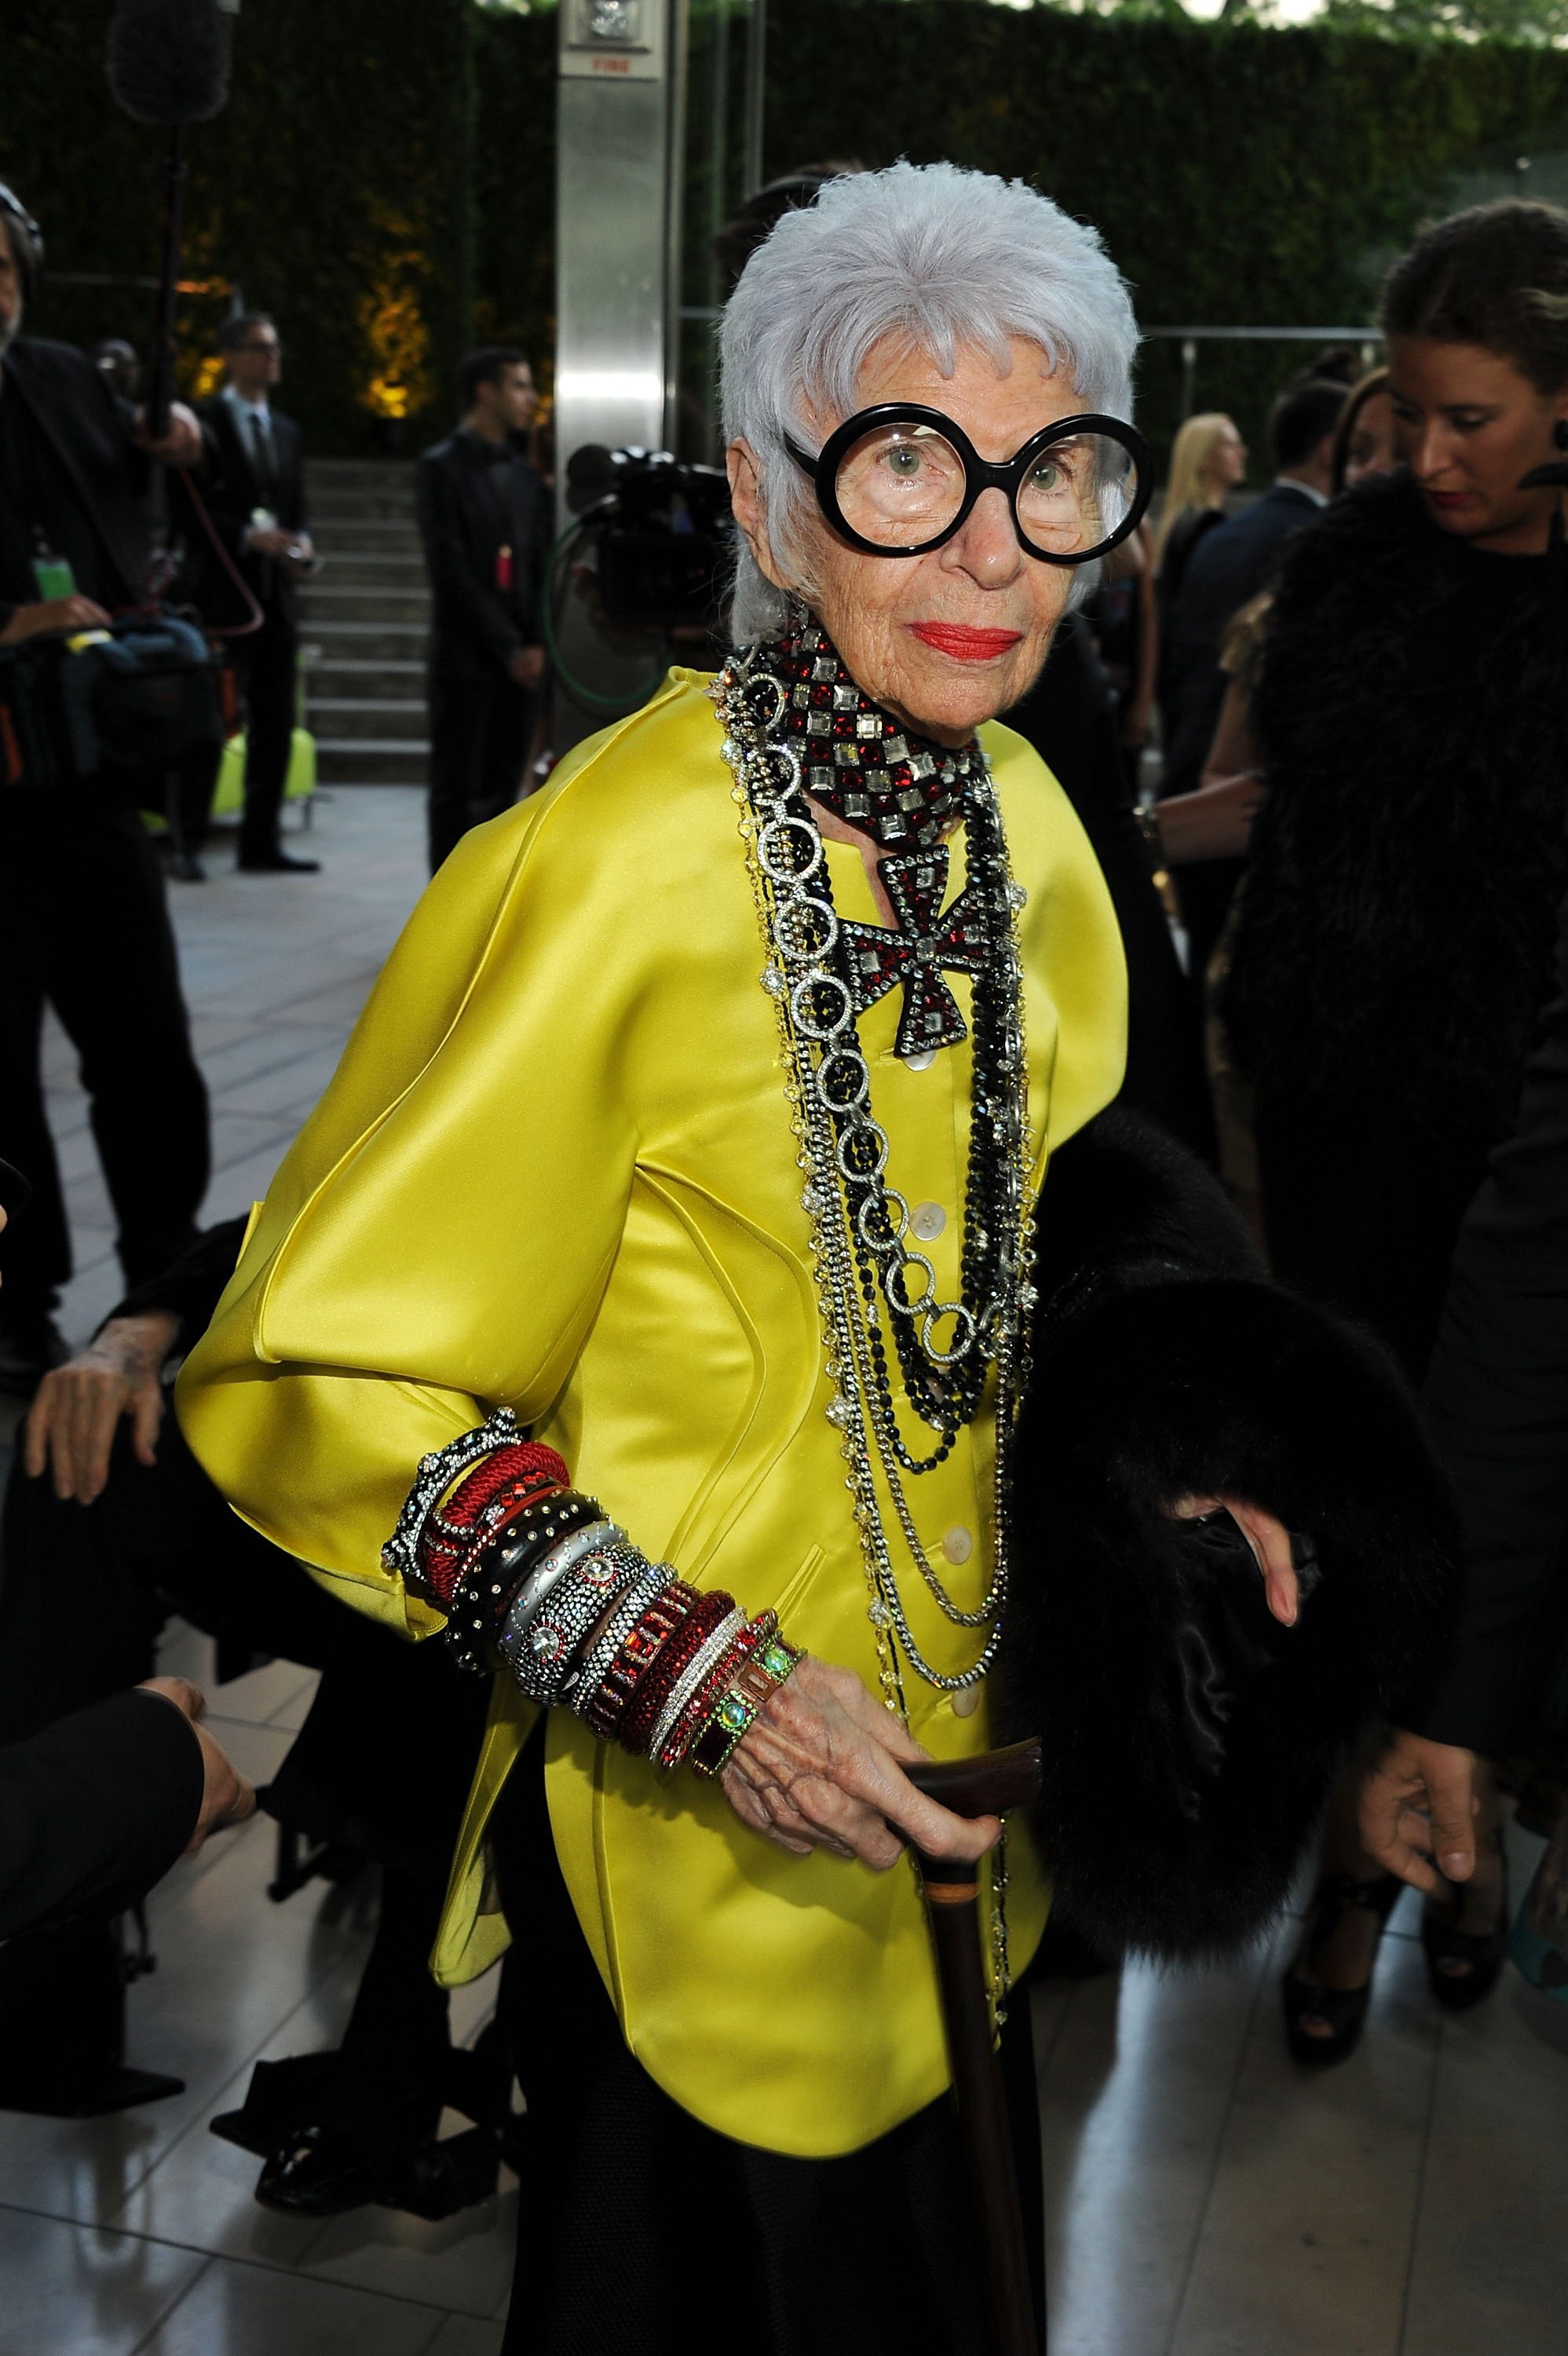 Why Women Over 60 Are Becoming Hip Style Icons Move Over Fashion Bloggers